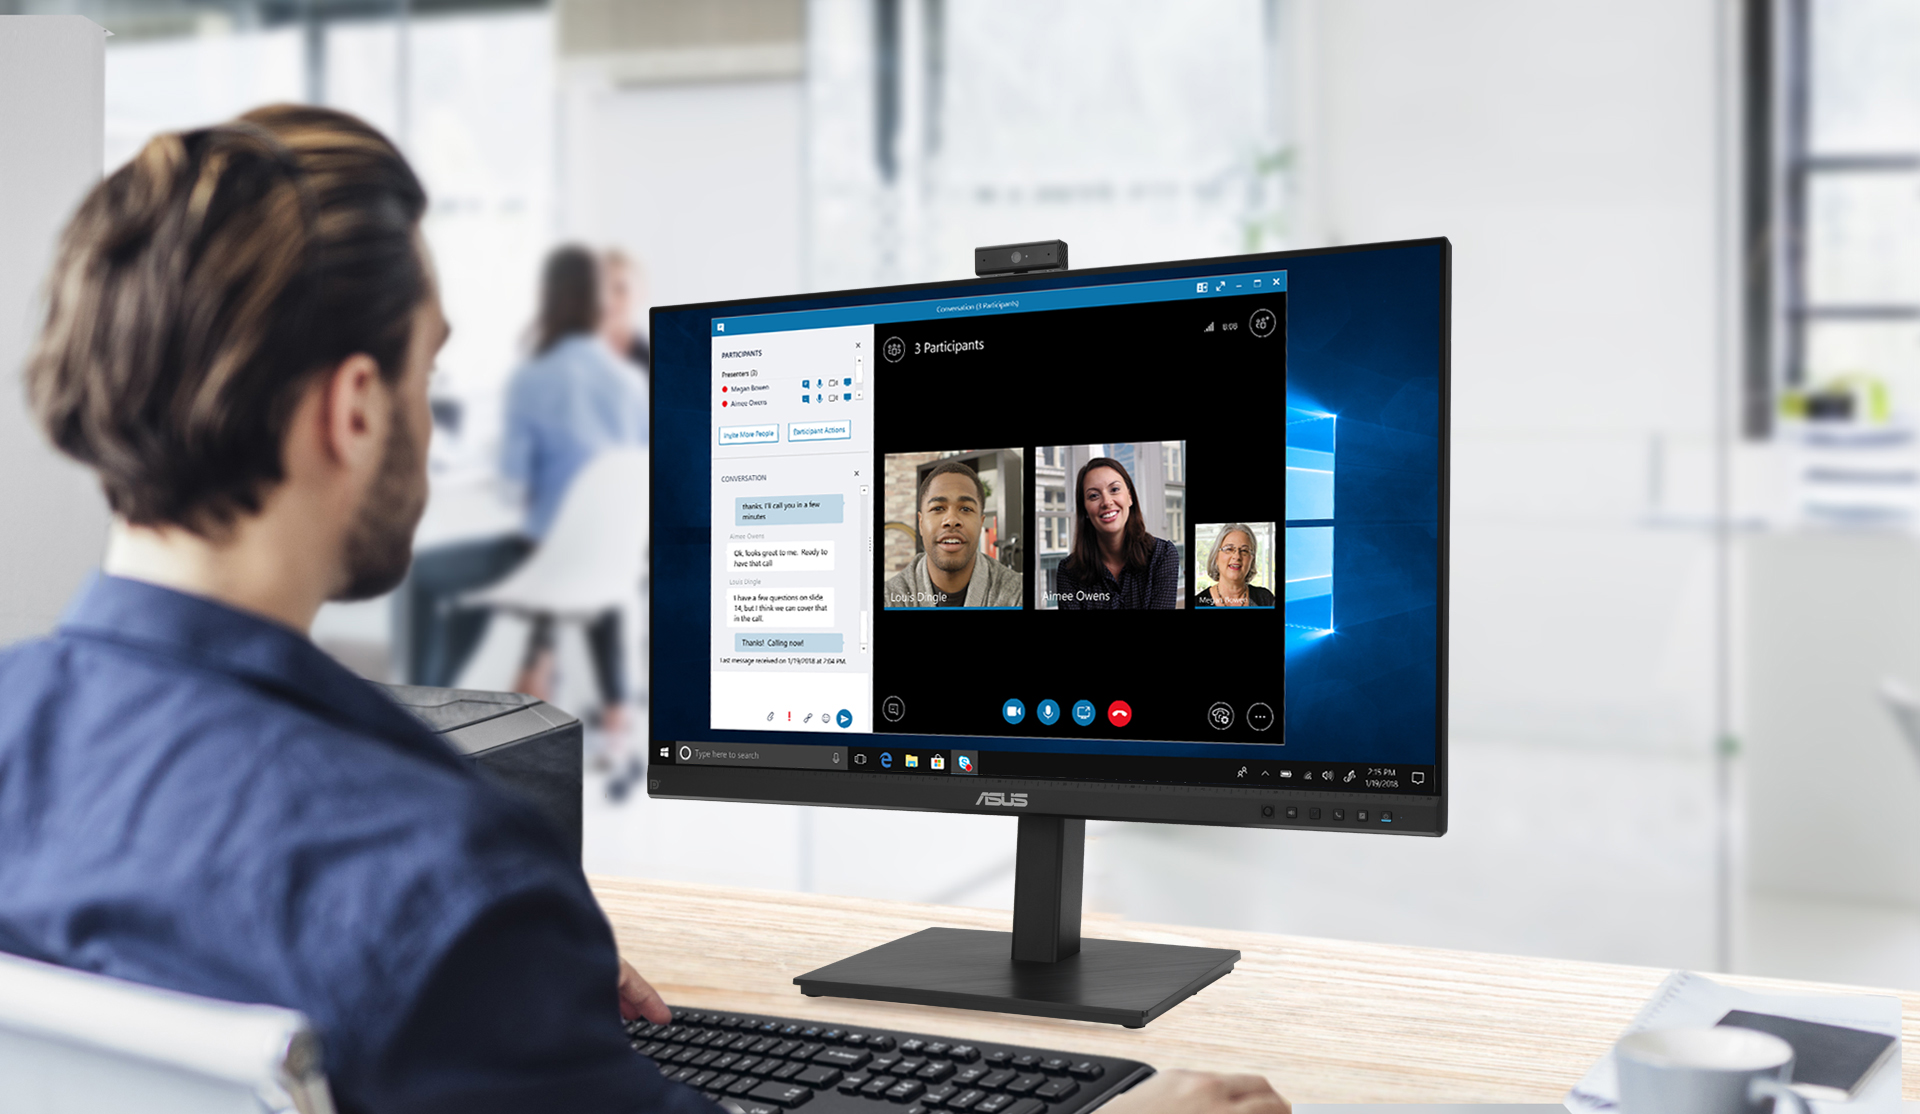 BE279QSK is a 27-inch Full HD monitor that features an integrated Full HD (2MP) webcam, microphone array and stereo speakers for video conferencing and live-streaming.